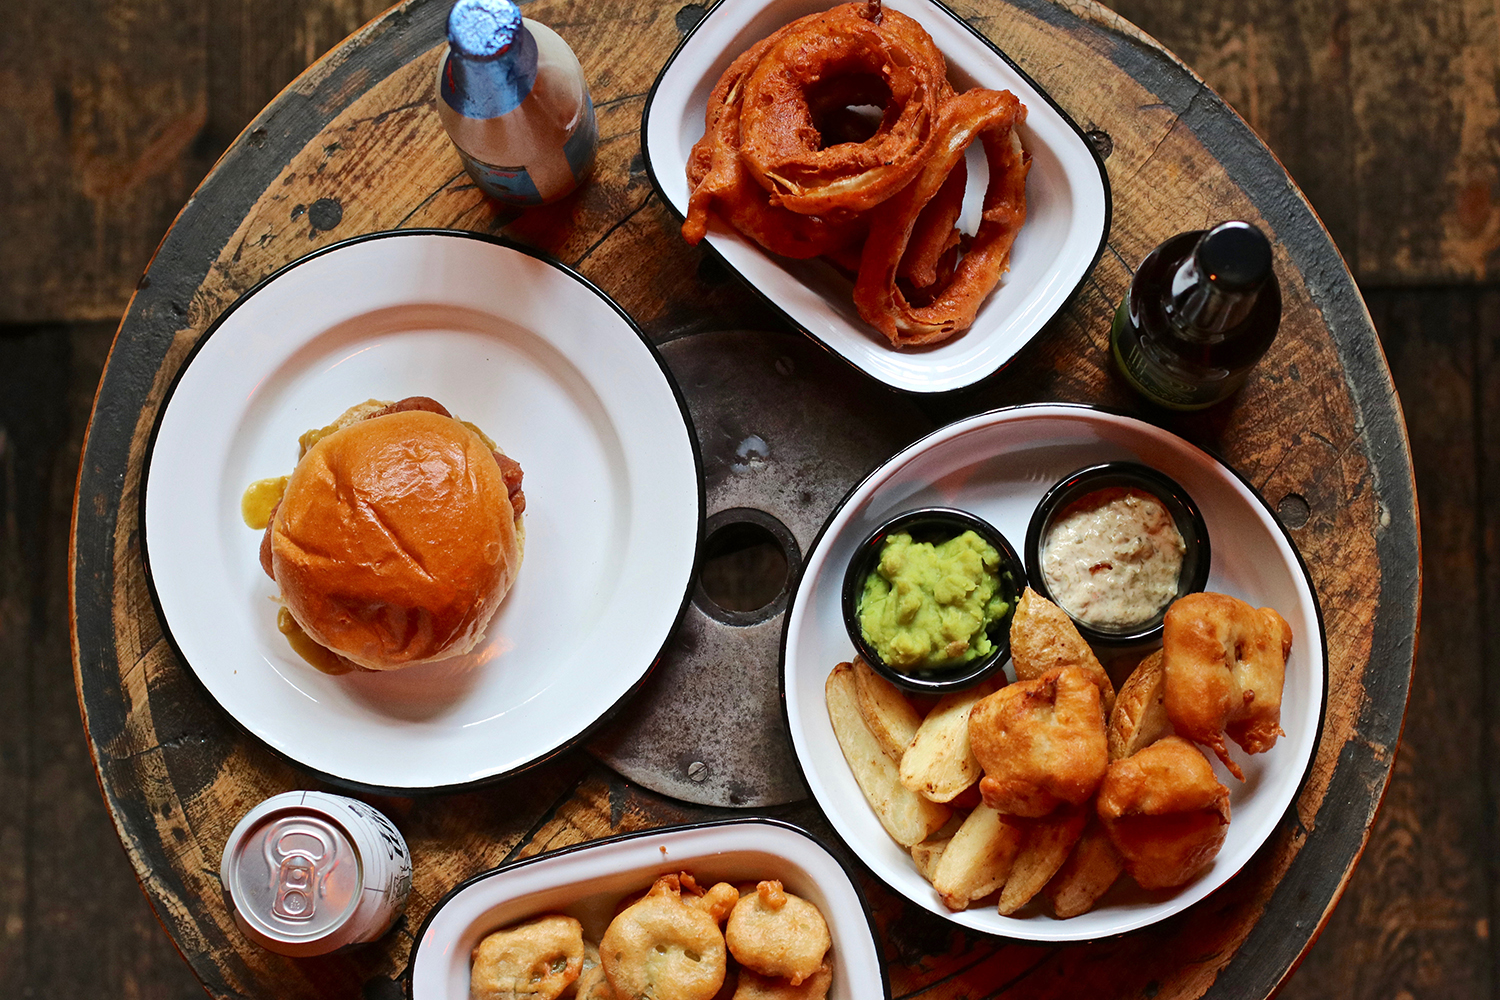 Burger, onion rings and sides